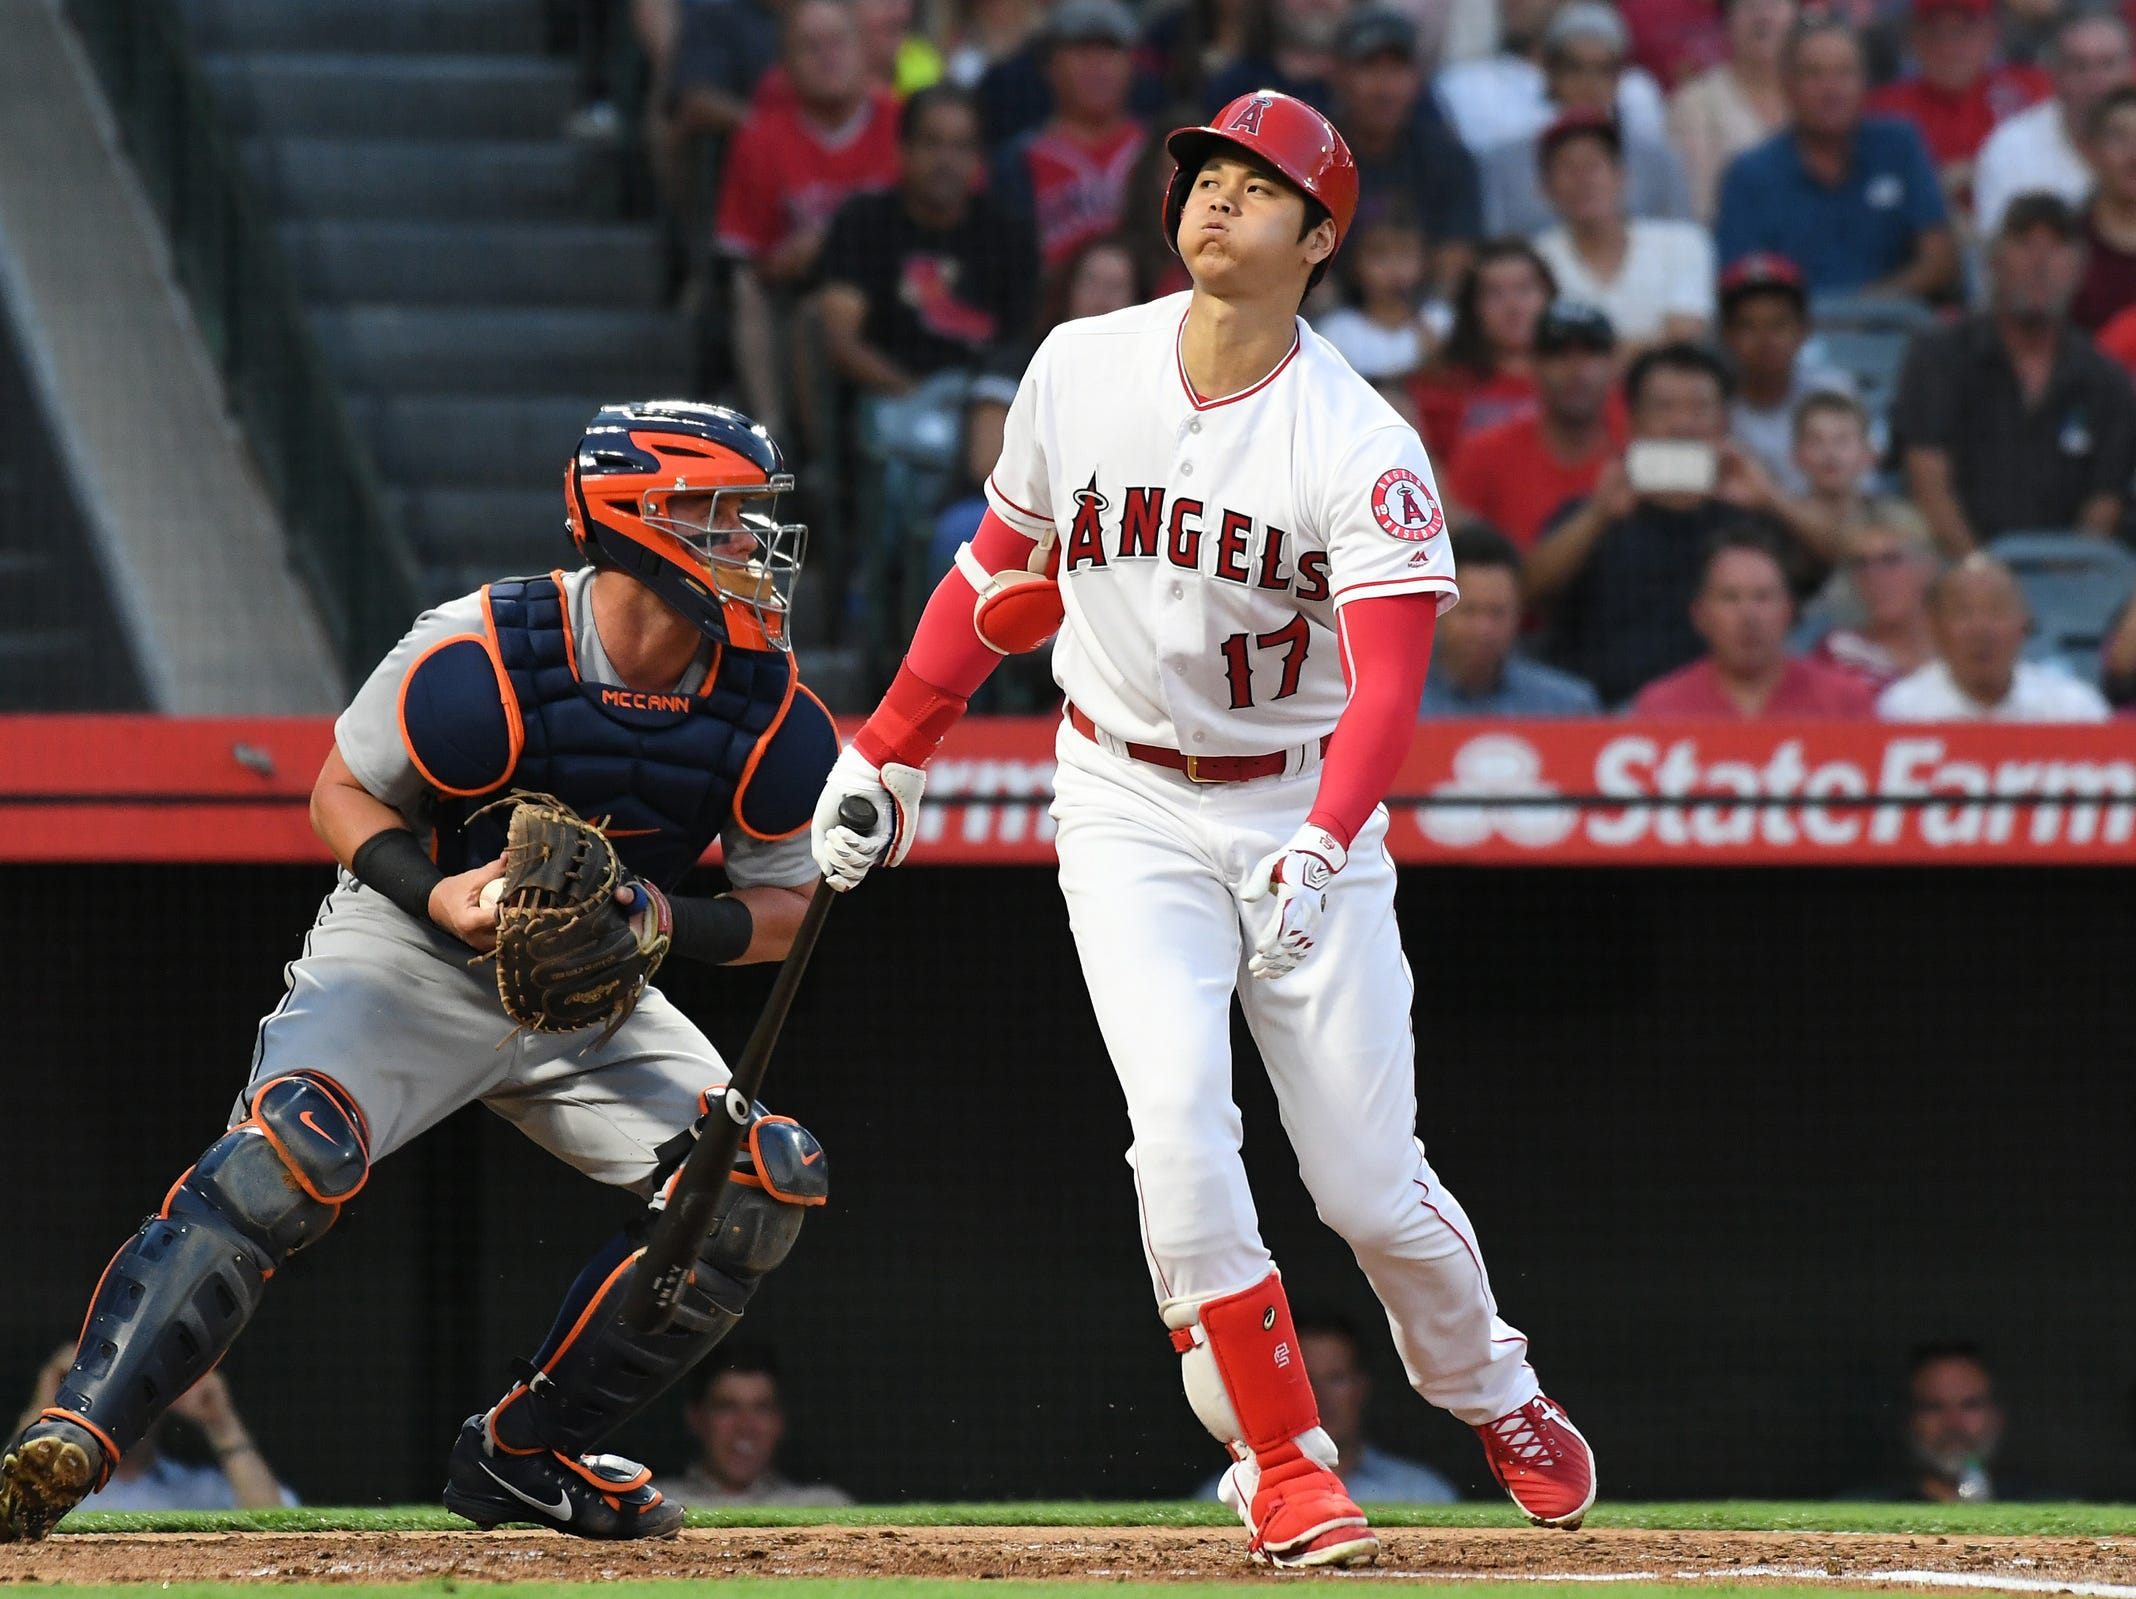 Angels designated hitter Shohei Ohtani reacts after striking out during the second inning on Monday, Aug. 6, 2018, in Anaheim, Calif.